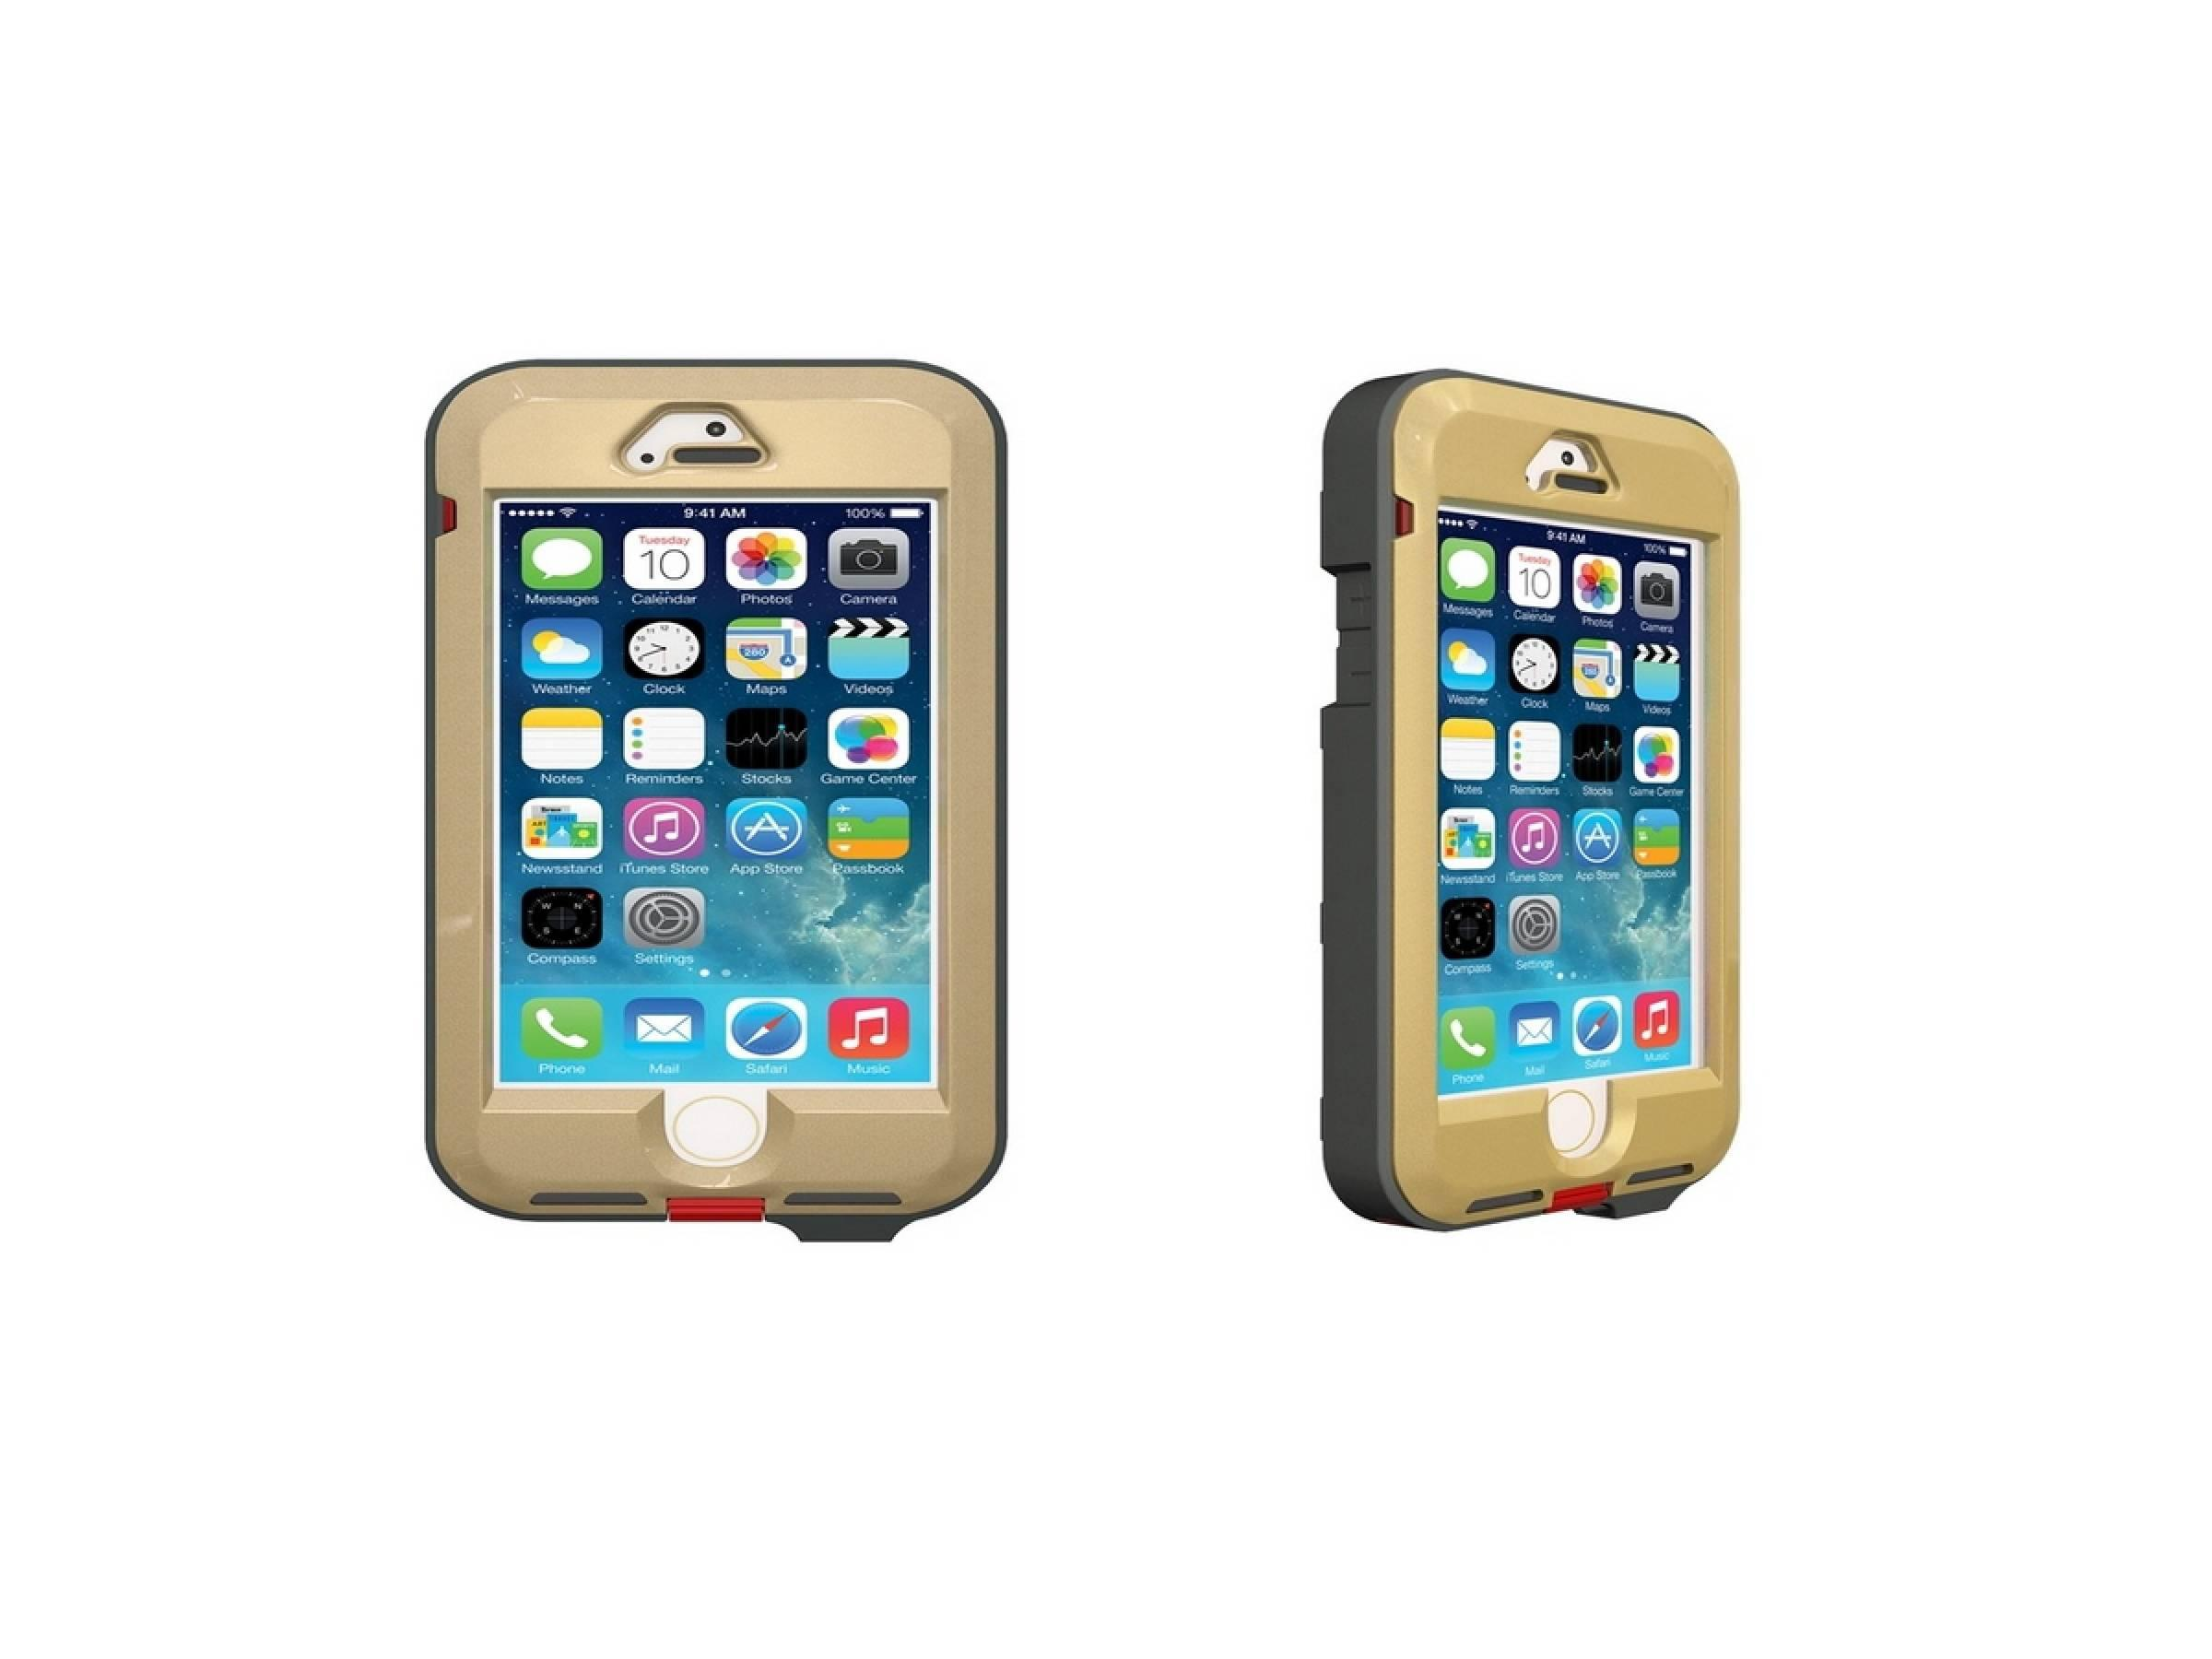 Colorant iPhone 5S Link Pro - Champagne Gold [Packing Rusak]